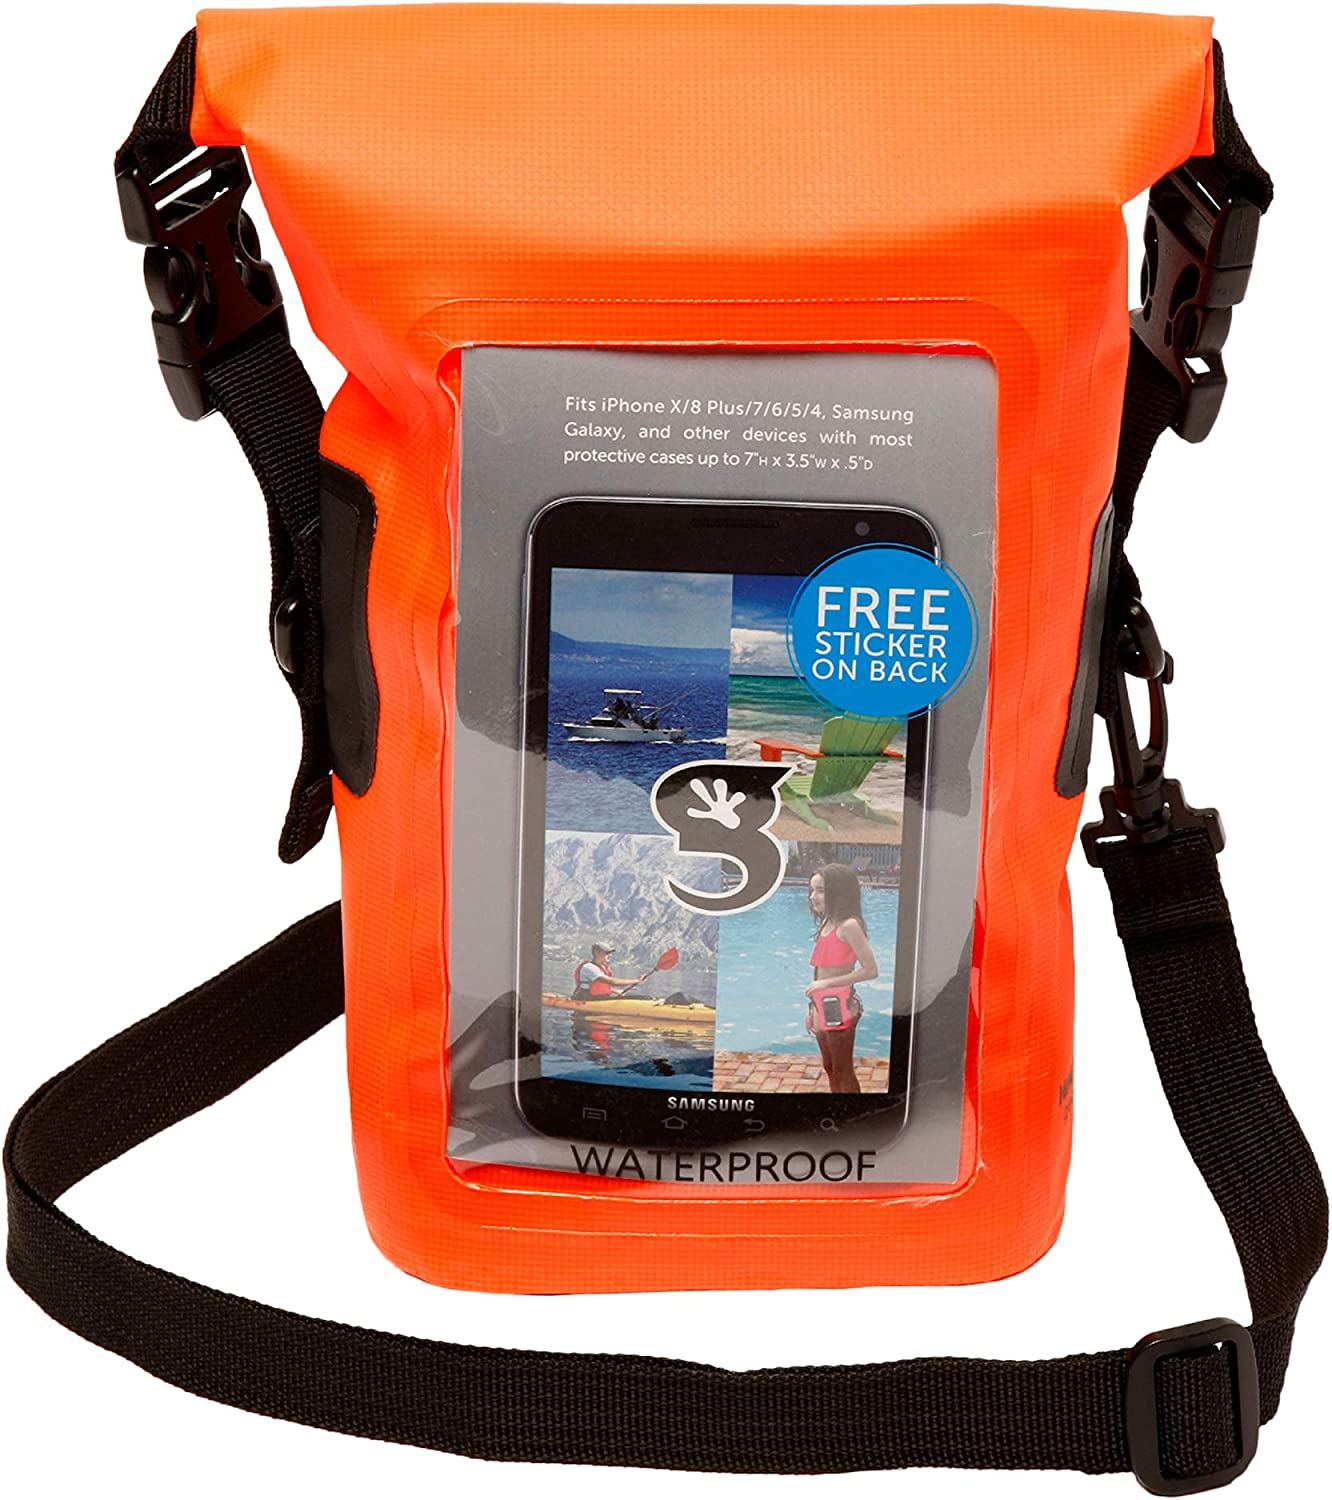 geckobrands Waterproof Phone Tote - Outdoor Phone Pouch & Dry Bag – Fits Most iPhone and Samsung Galaxy Models, Neon Orange